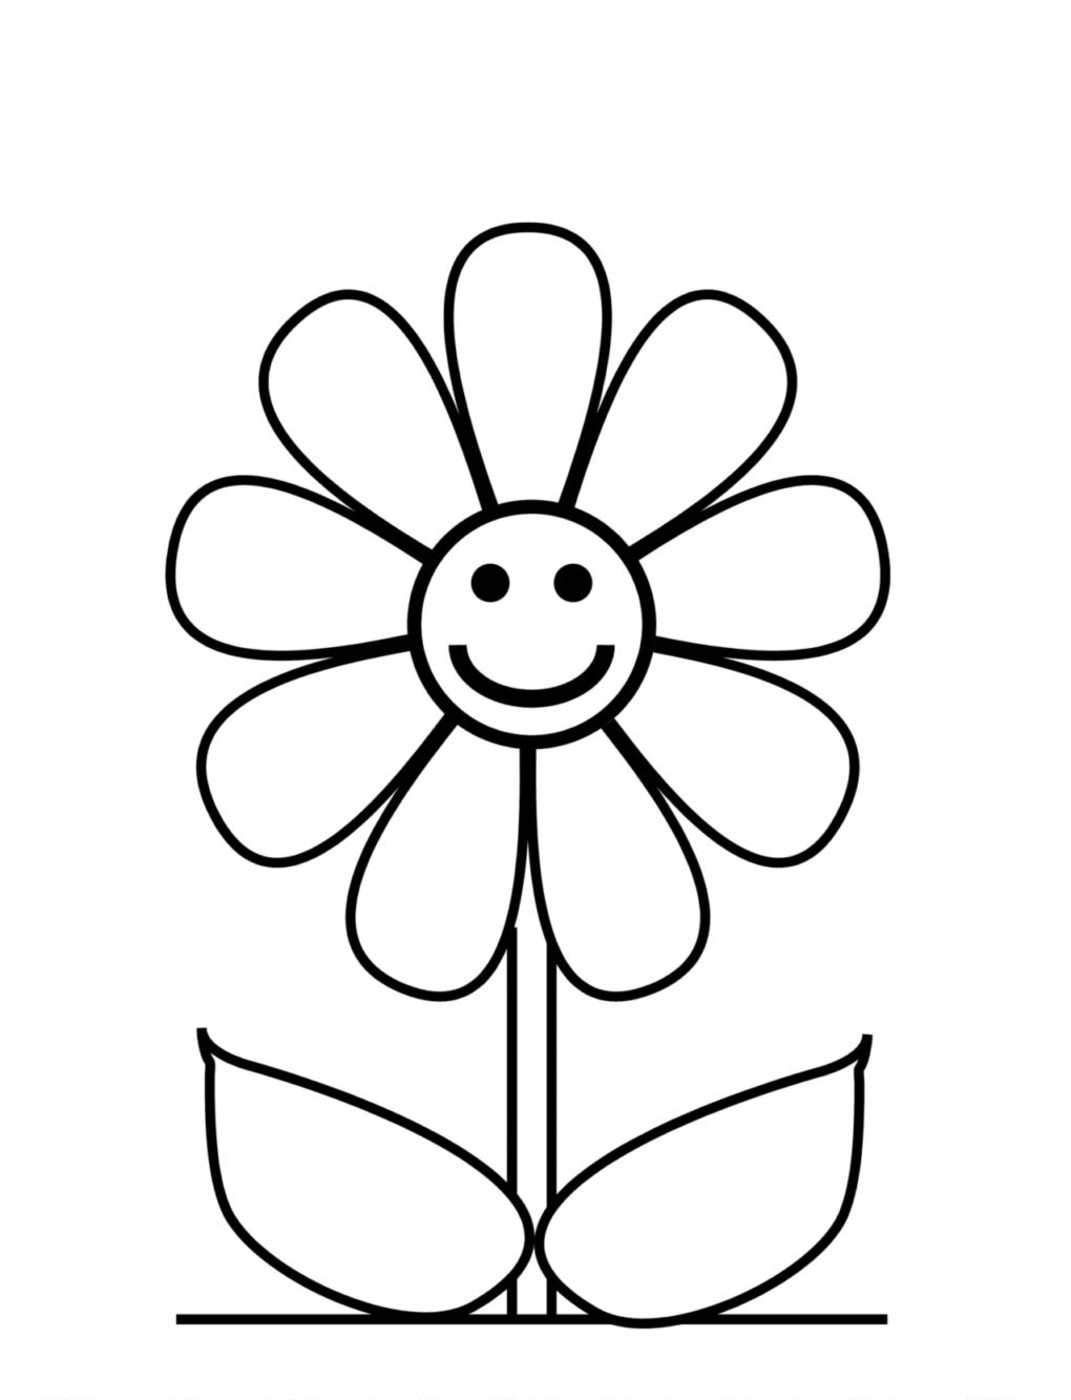 flower coloring pages for kids free printable flower coloring pages for kids cool2bkids kids flower coloring pages for